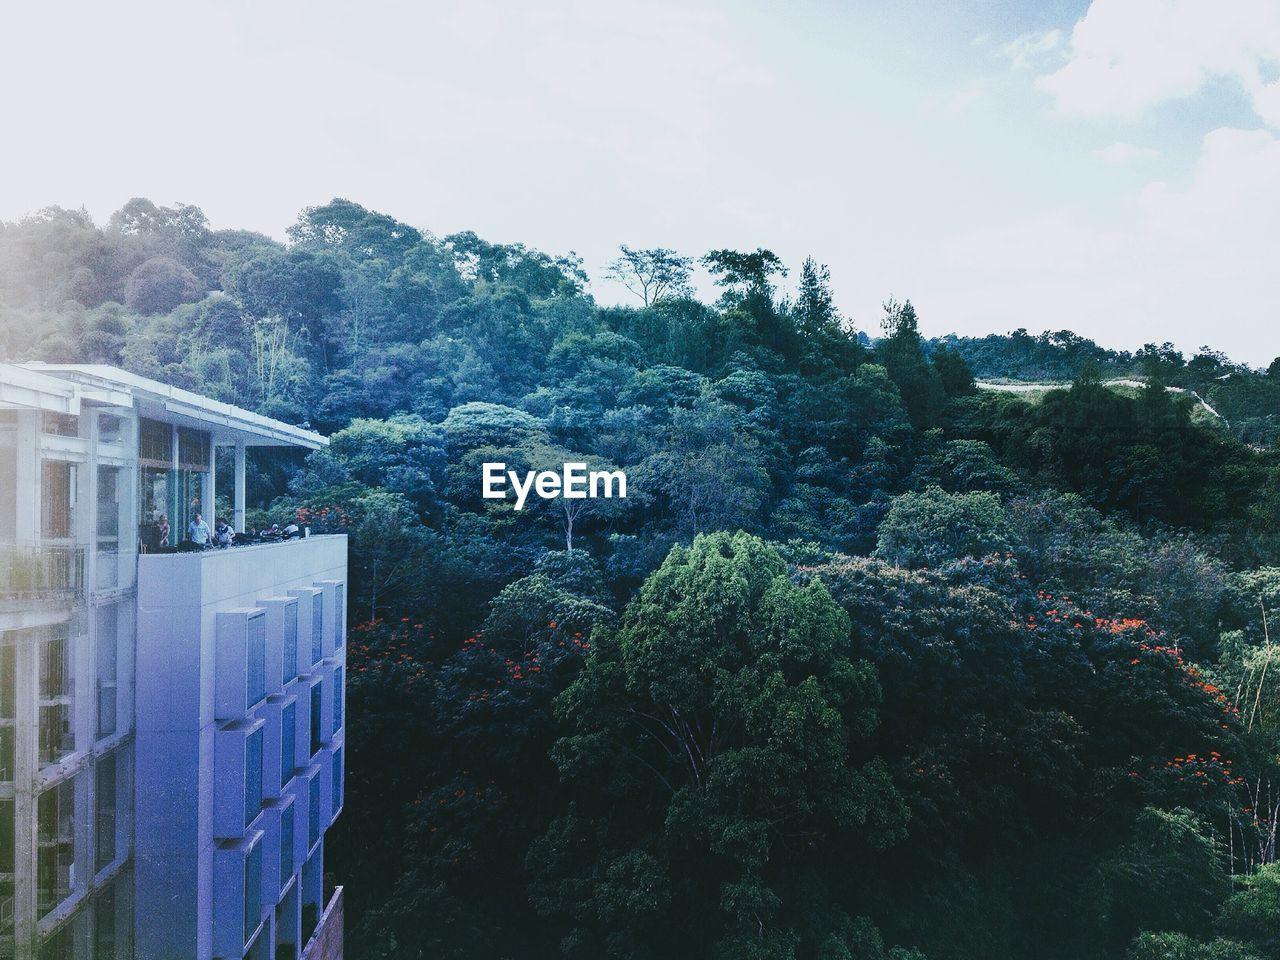 Building by trees growing on hill against sky